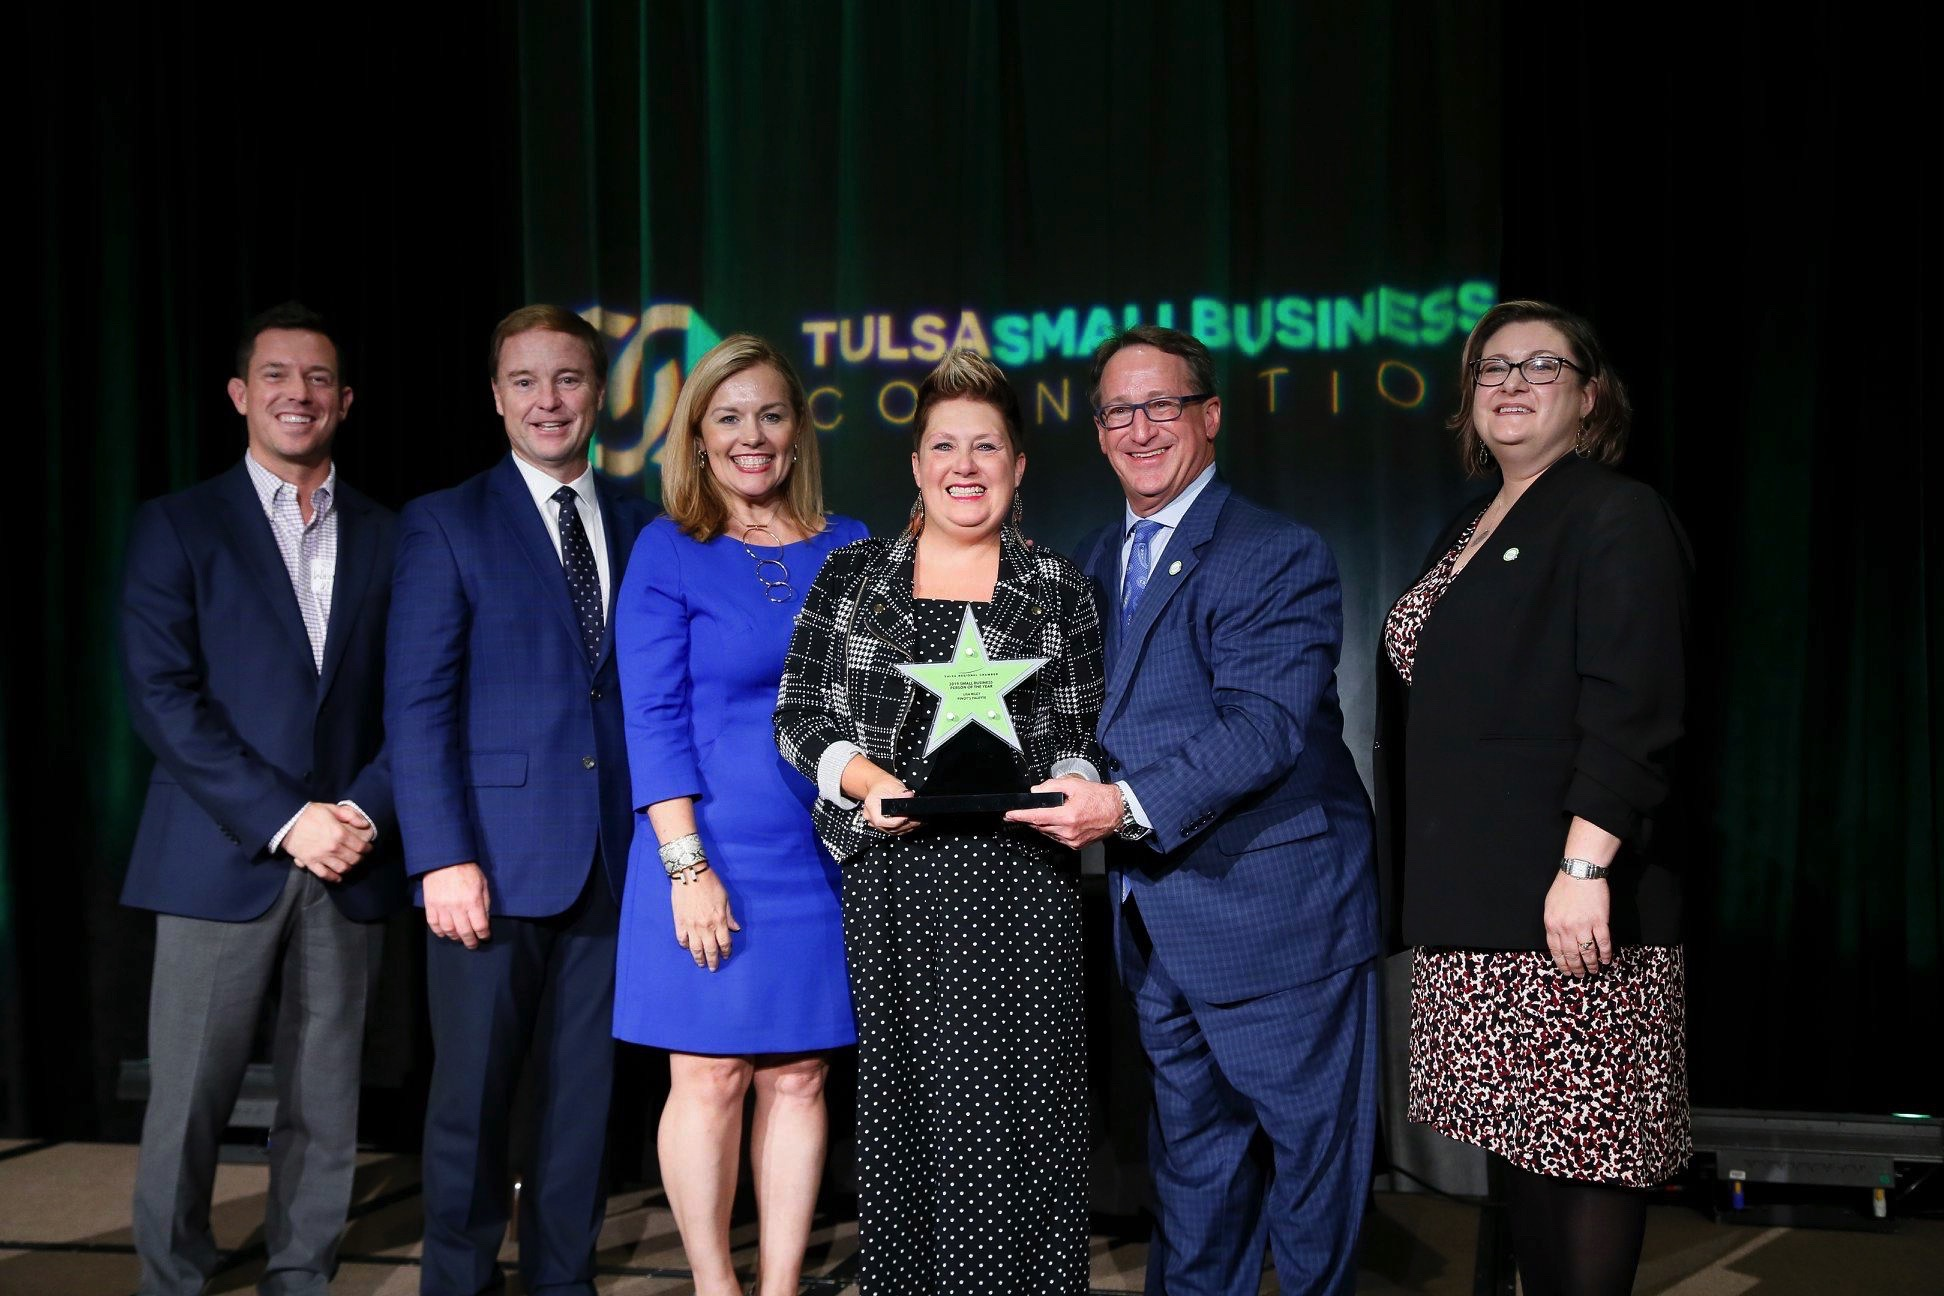 Tulsa's Premier Paint and Sip Owner Wins Tulsa's Business Person of the Year!